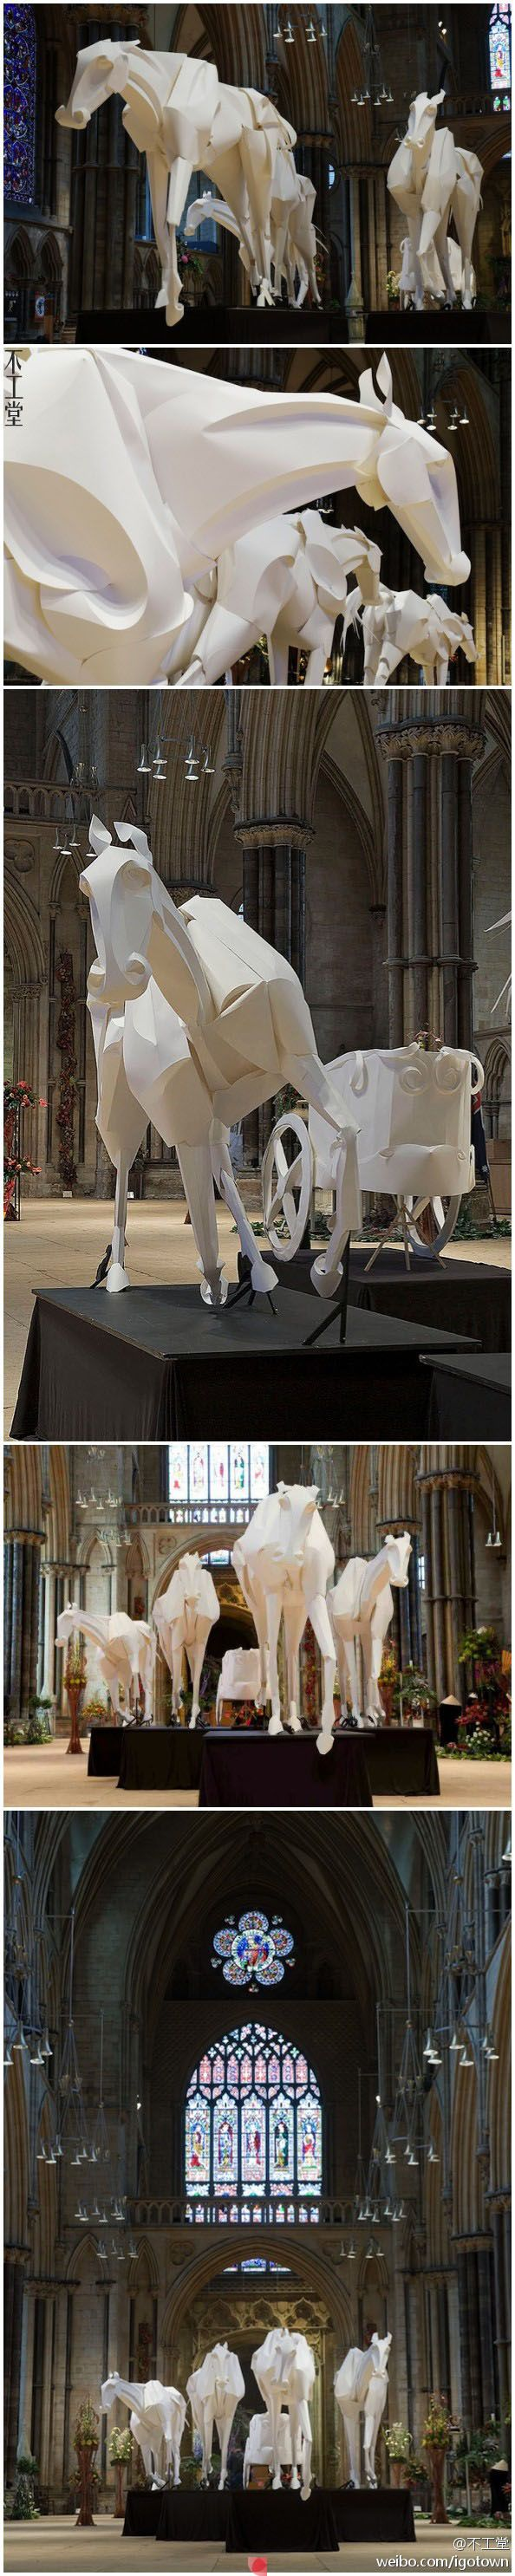 Exhibit & Display.- Majestic Paper Horses :: Installation by Richard Sweeney - horse and chariot sculpture installation made of paper inside the Lincoln Cathedral in Lincoln, England. #art #installation